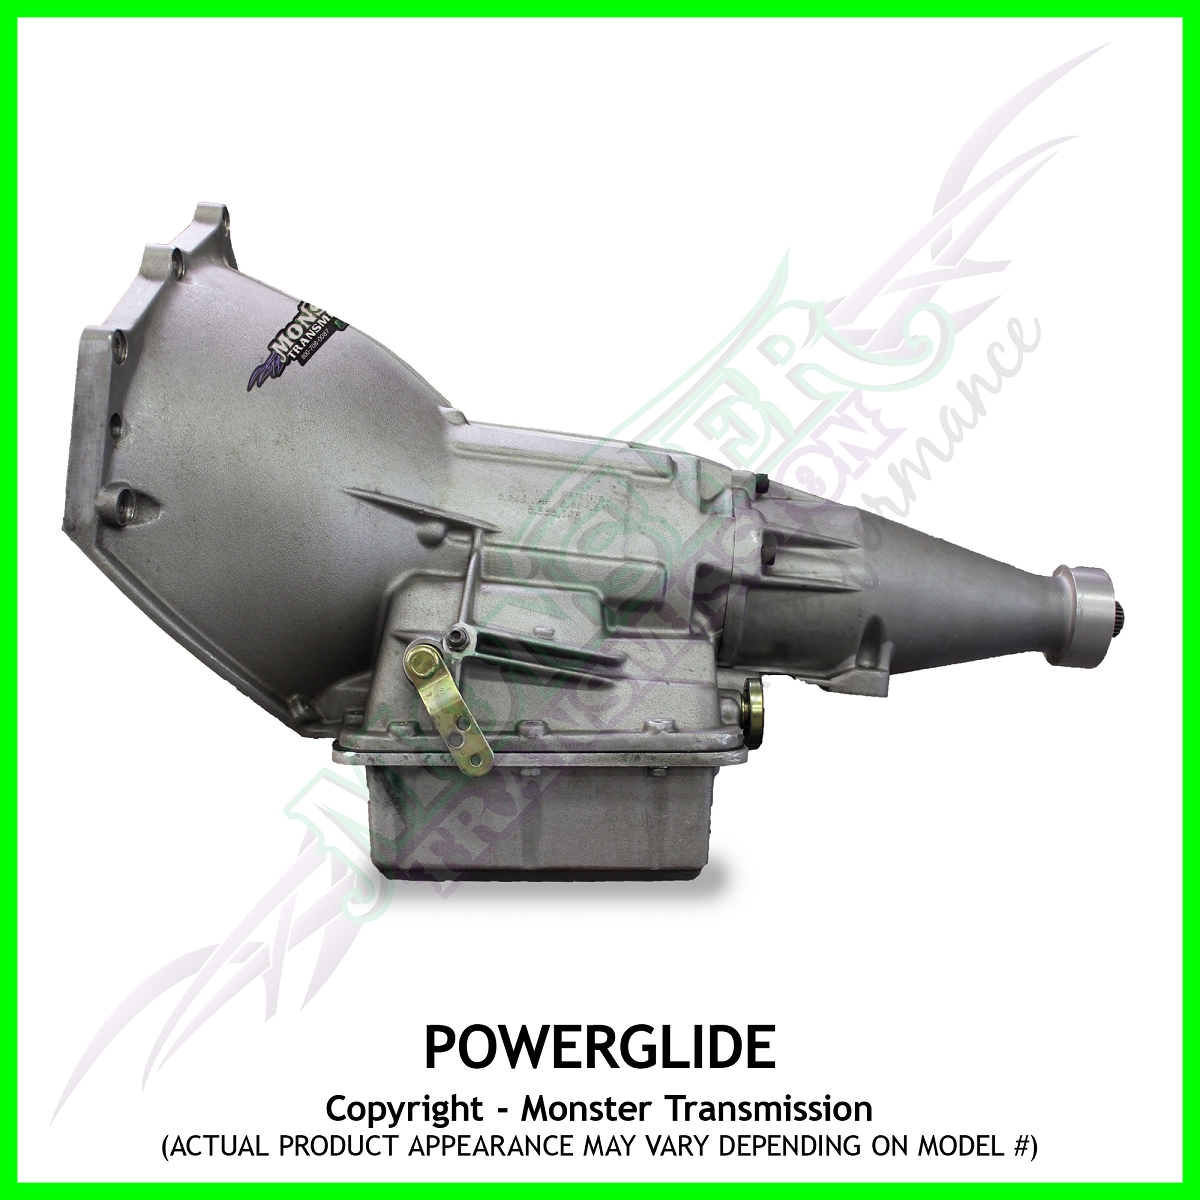 Powerglide Monster Powerglide Transmission Up To 1800hp Rebuilt